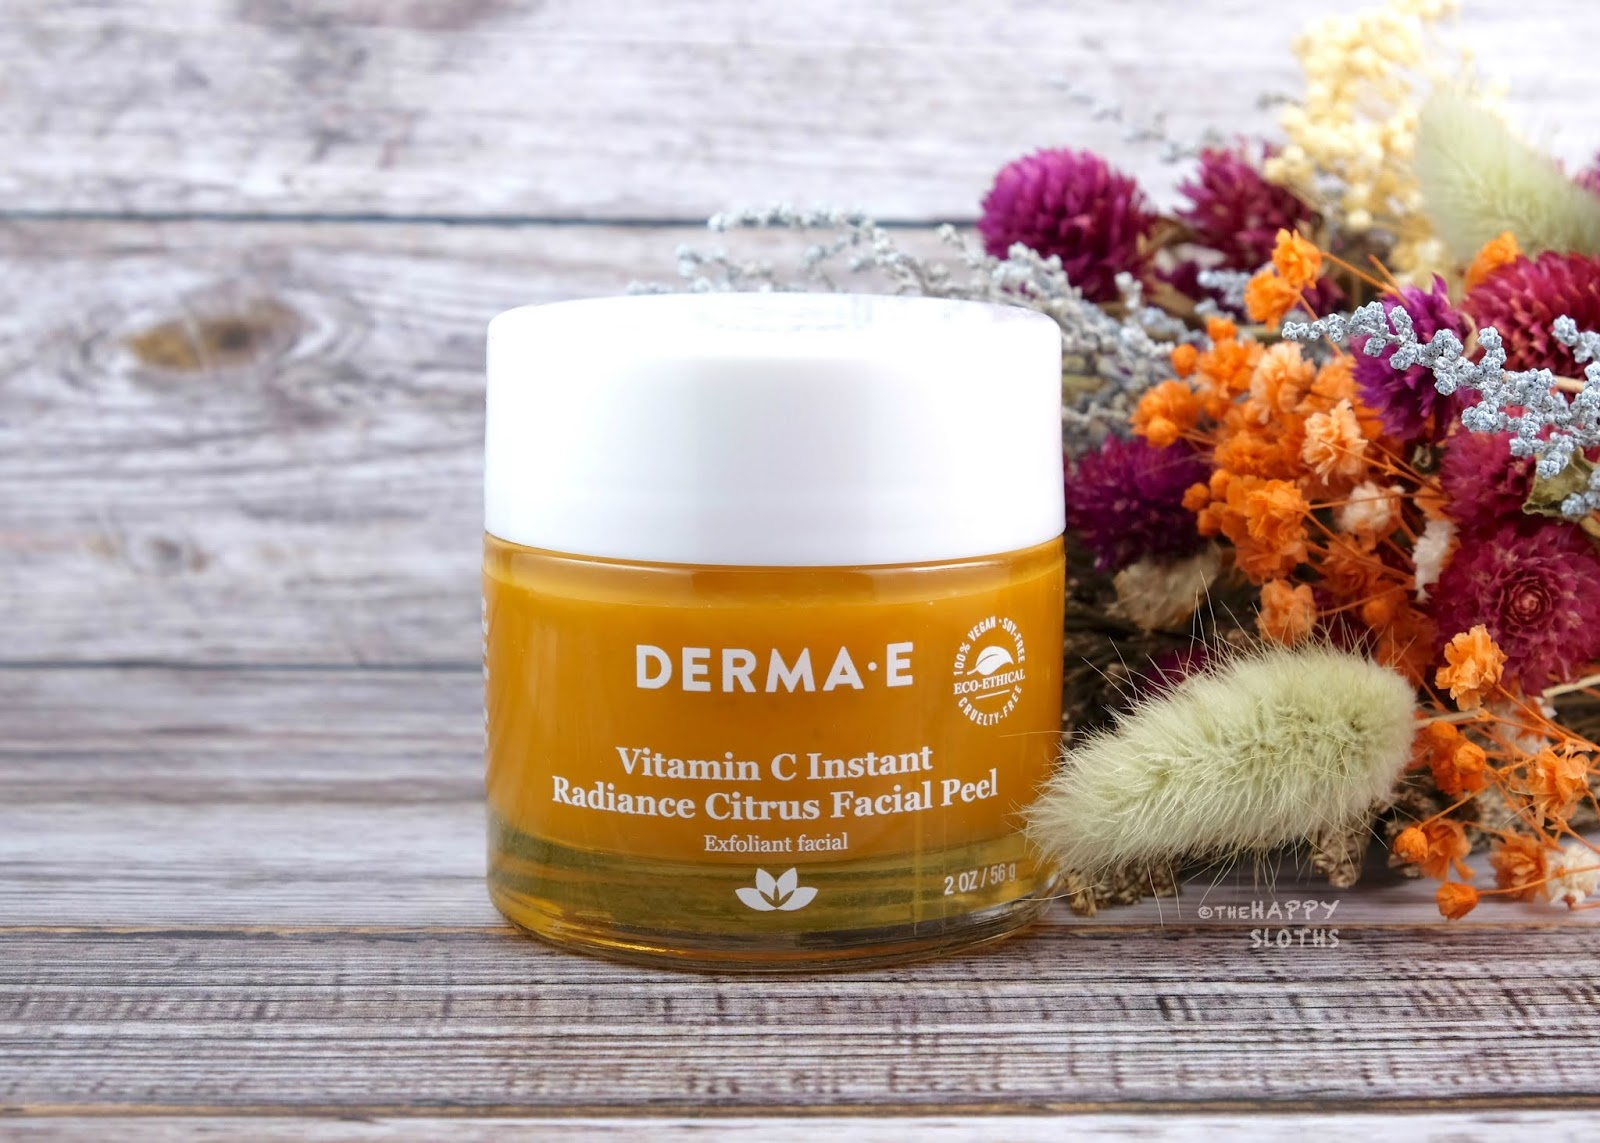 Derma E | Vitamin C Instant Radiance Citrus Facial Peel: Review